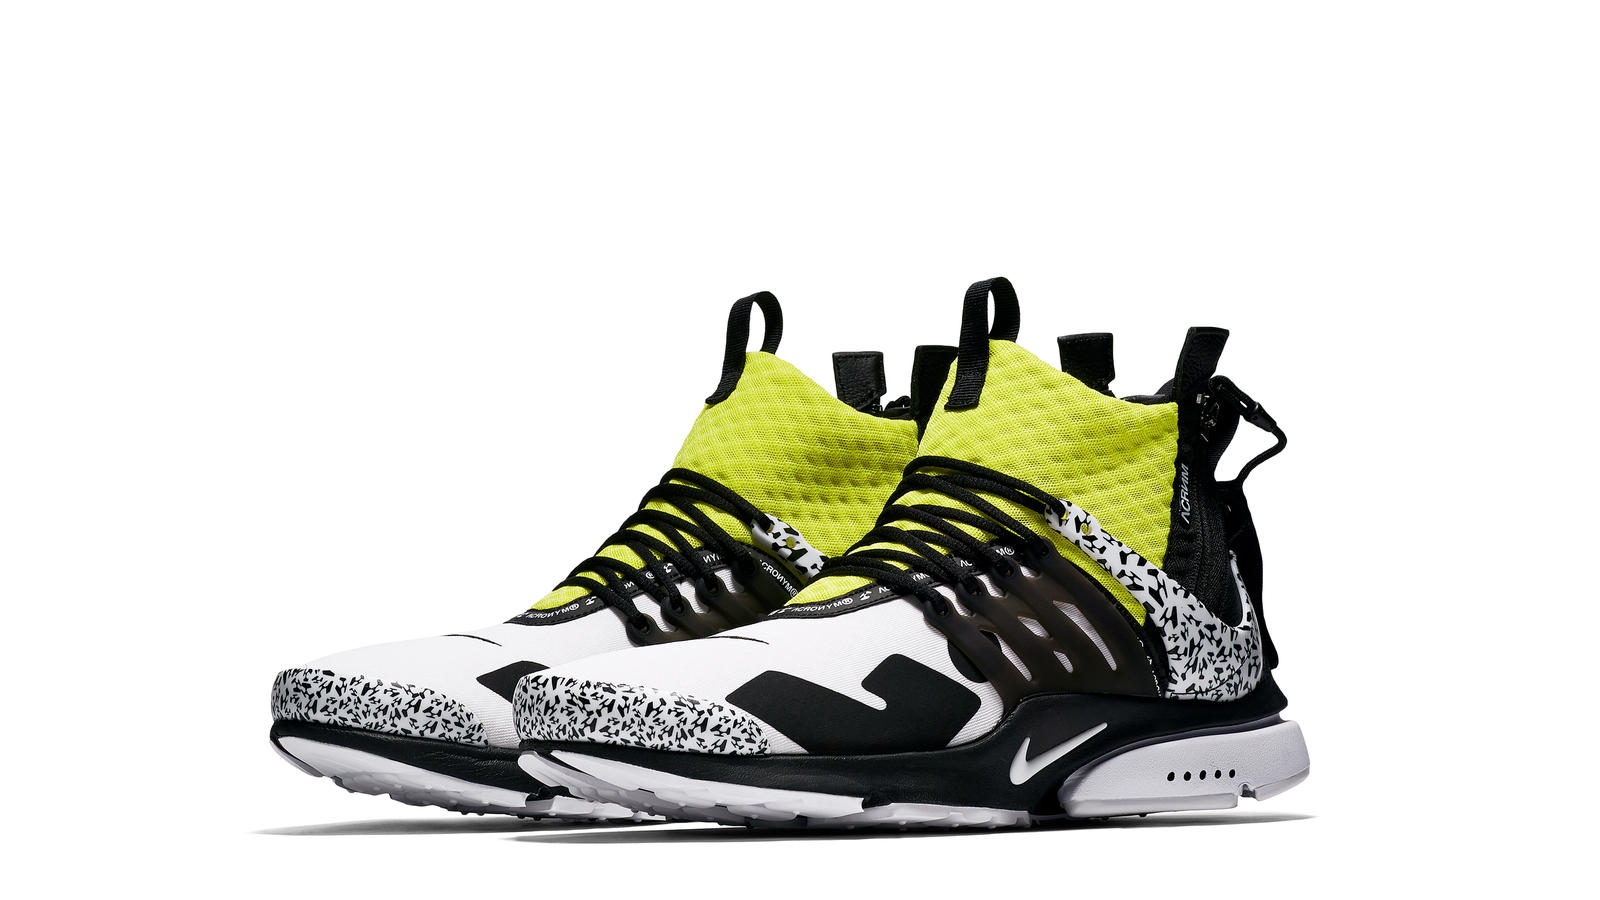 low priced 0dd67 35ed7 Acronym x Nike Air Presto Mid 19